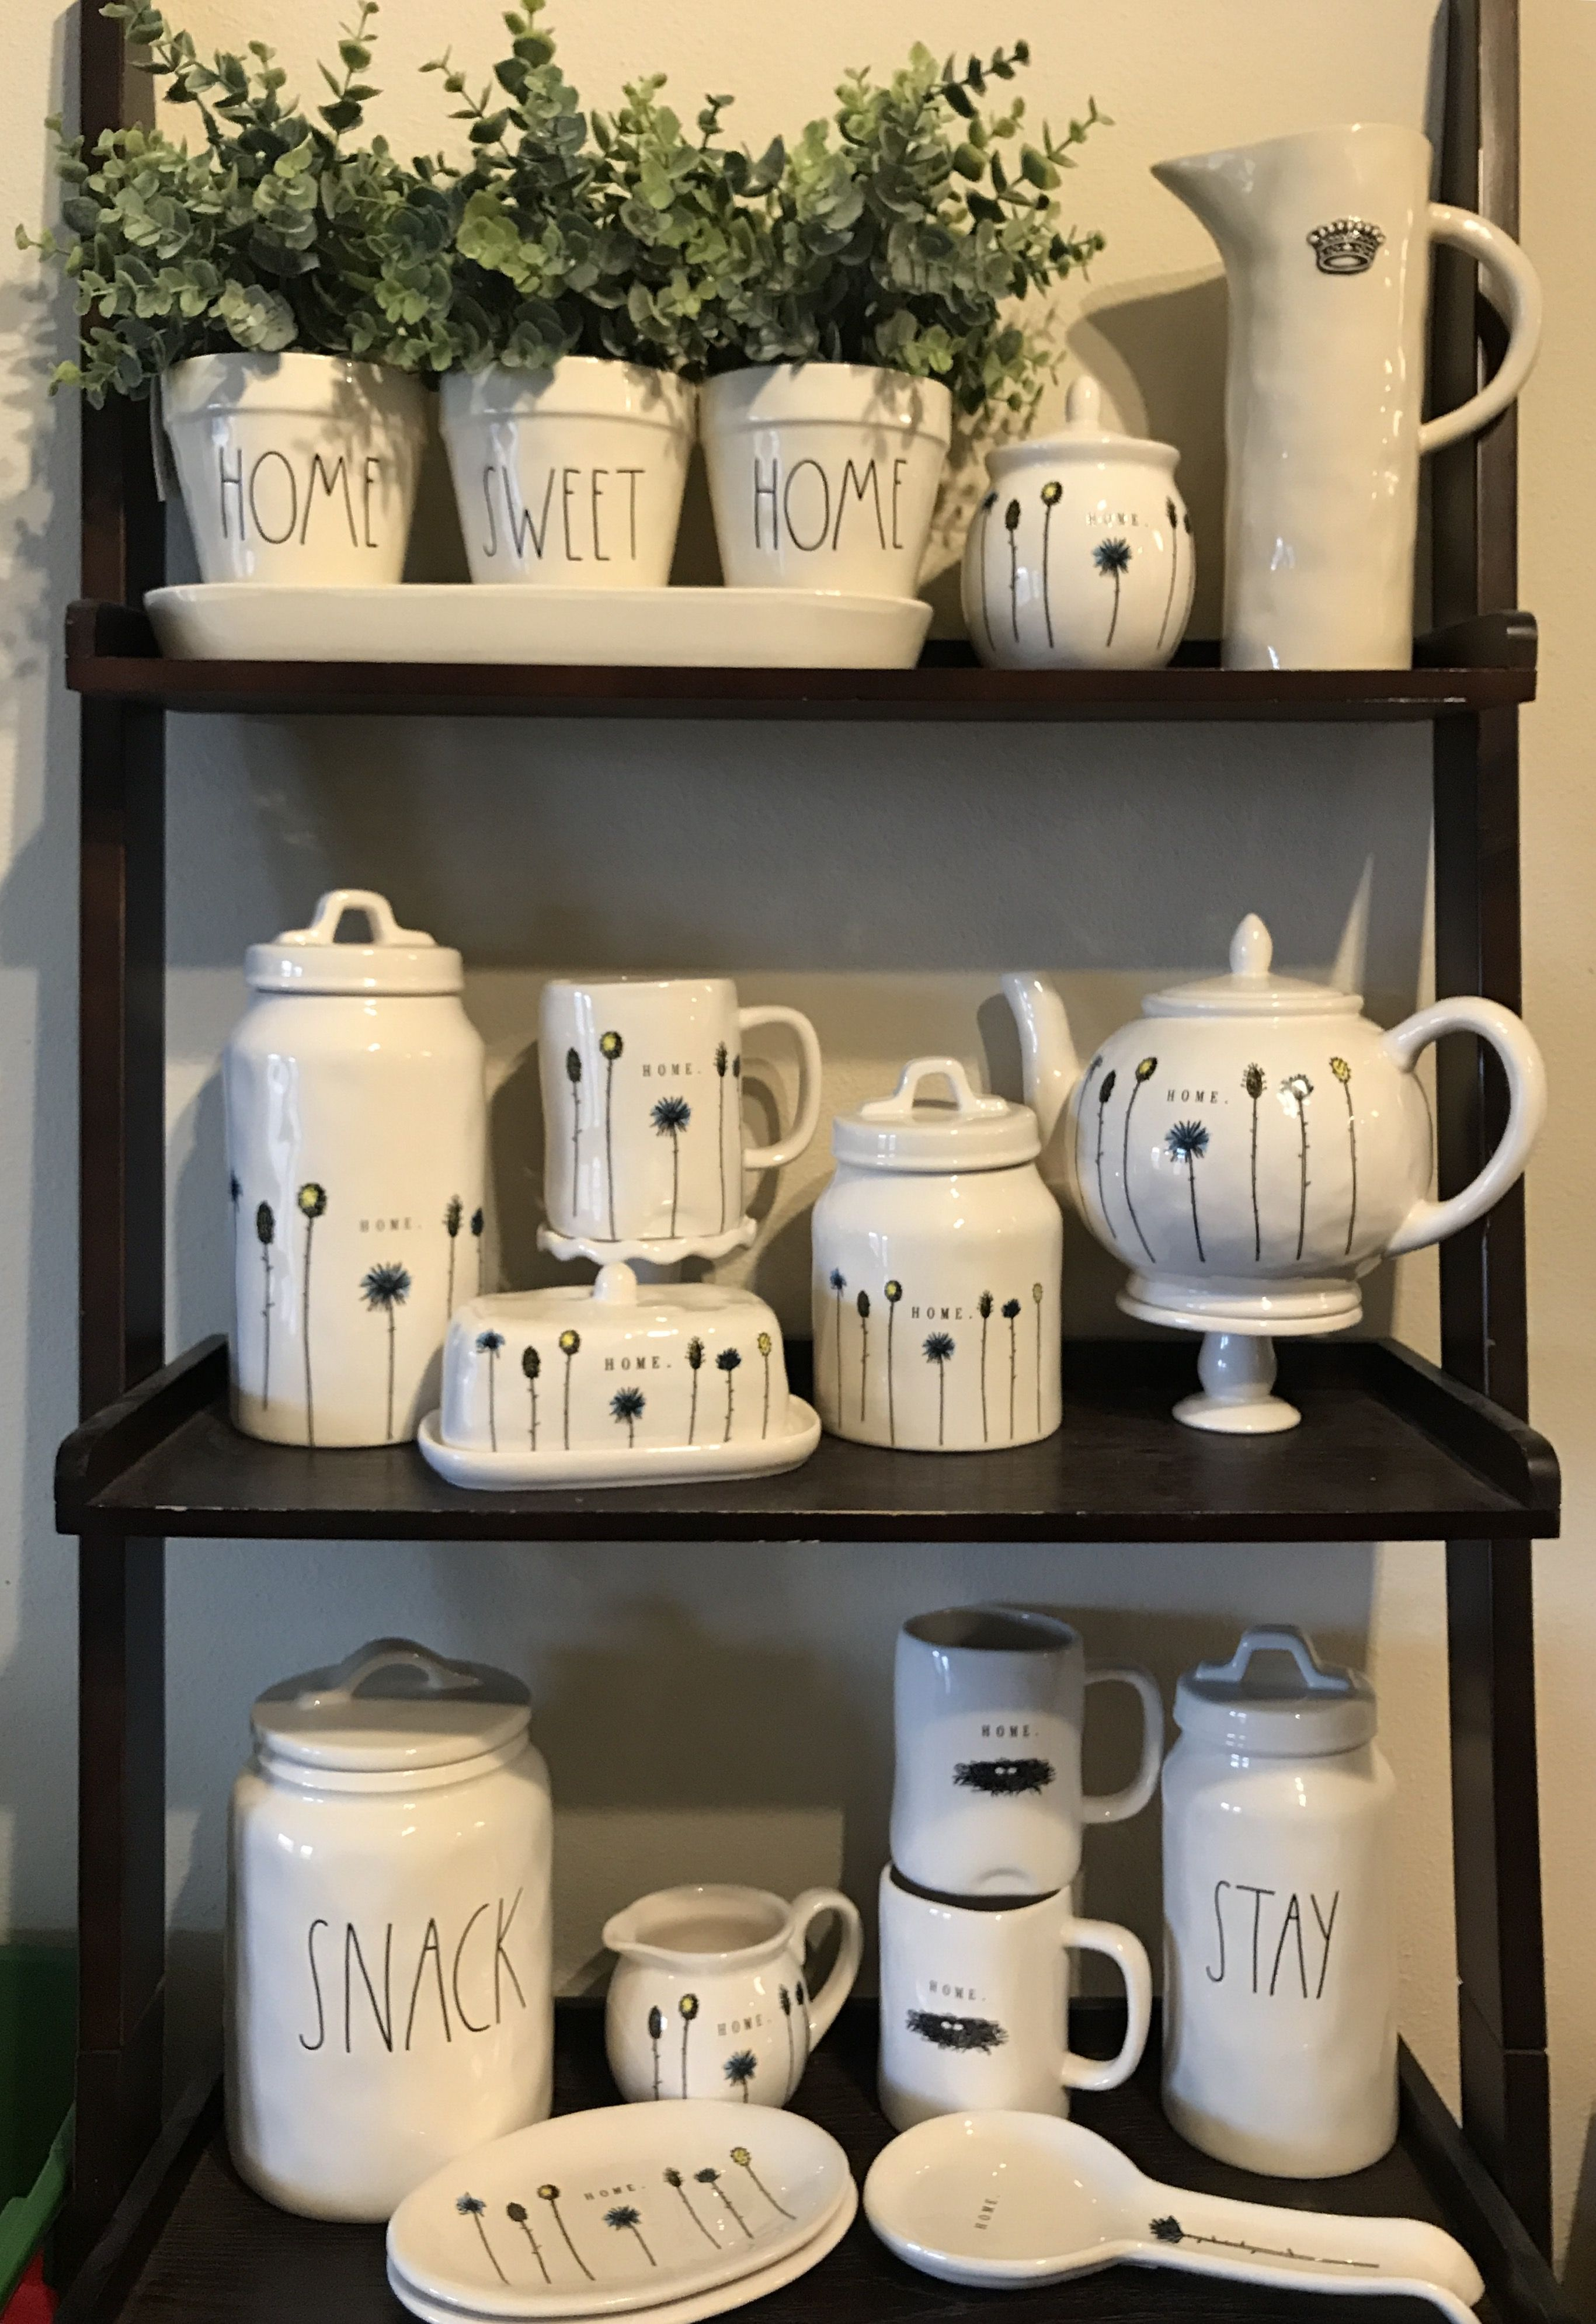 Rae Dunn Home Line Collection Crown Pitcher Snack Canister Home Sweet Home Planter Stay Canister Rae Dunn Collection Rae Dunn Decor Display